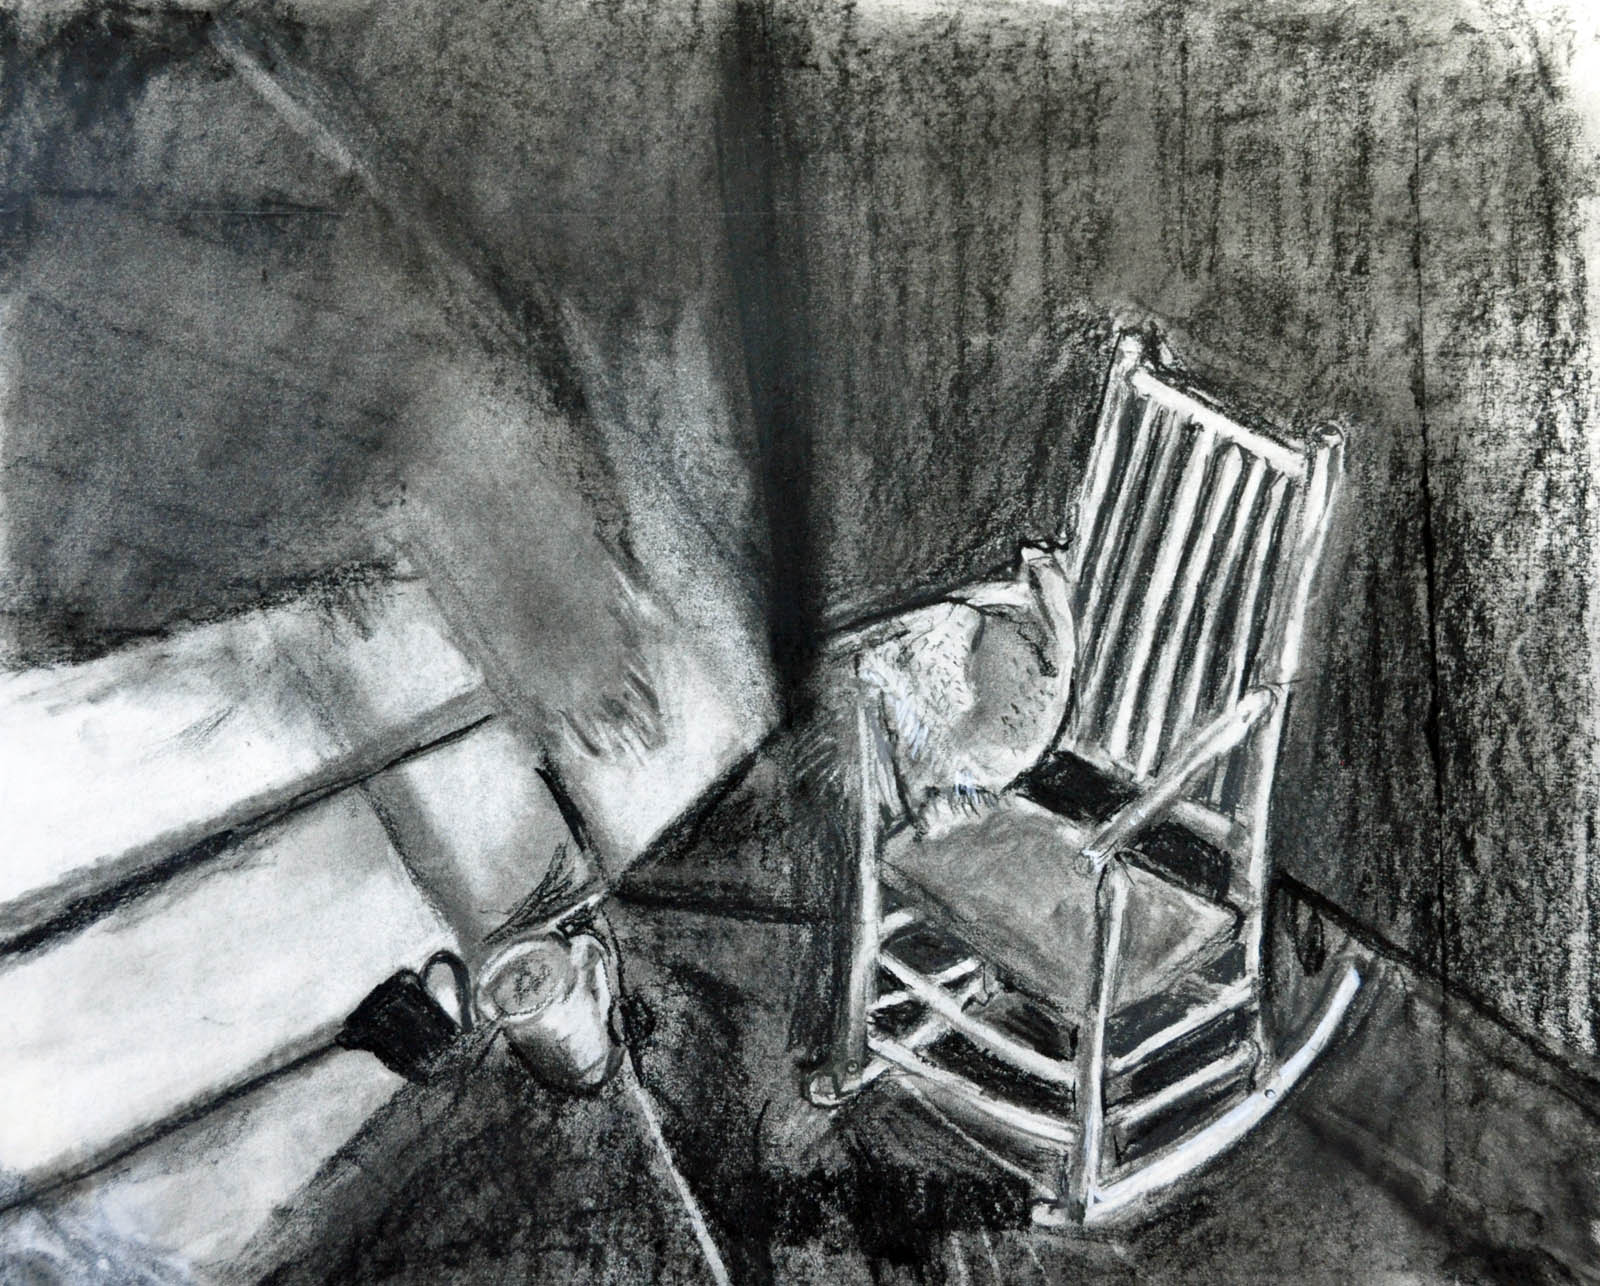 Rocking Chair, charcoal